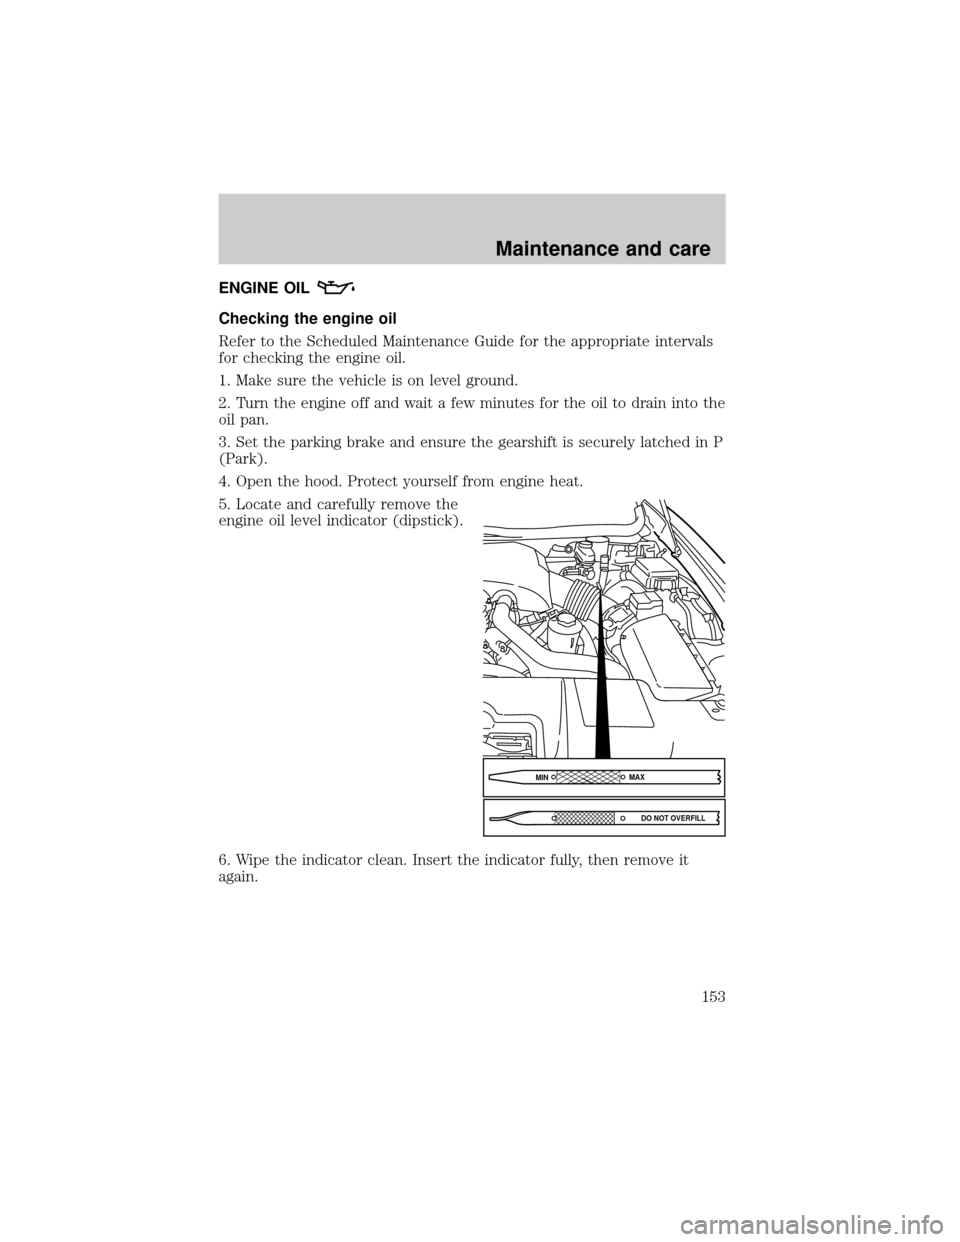 engine oil LINCOLN TOWN CAR 2000 Owners Manual (224 Pages)